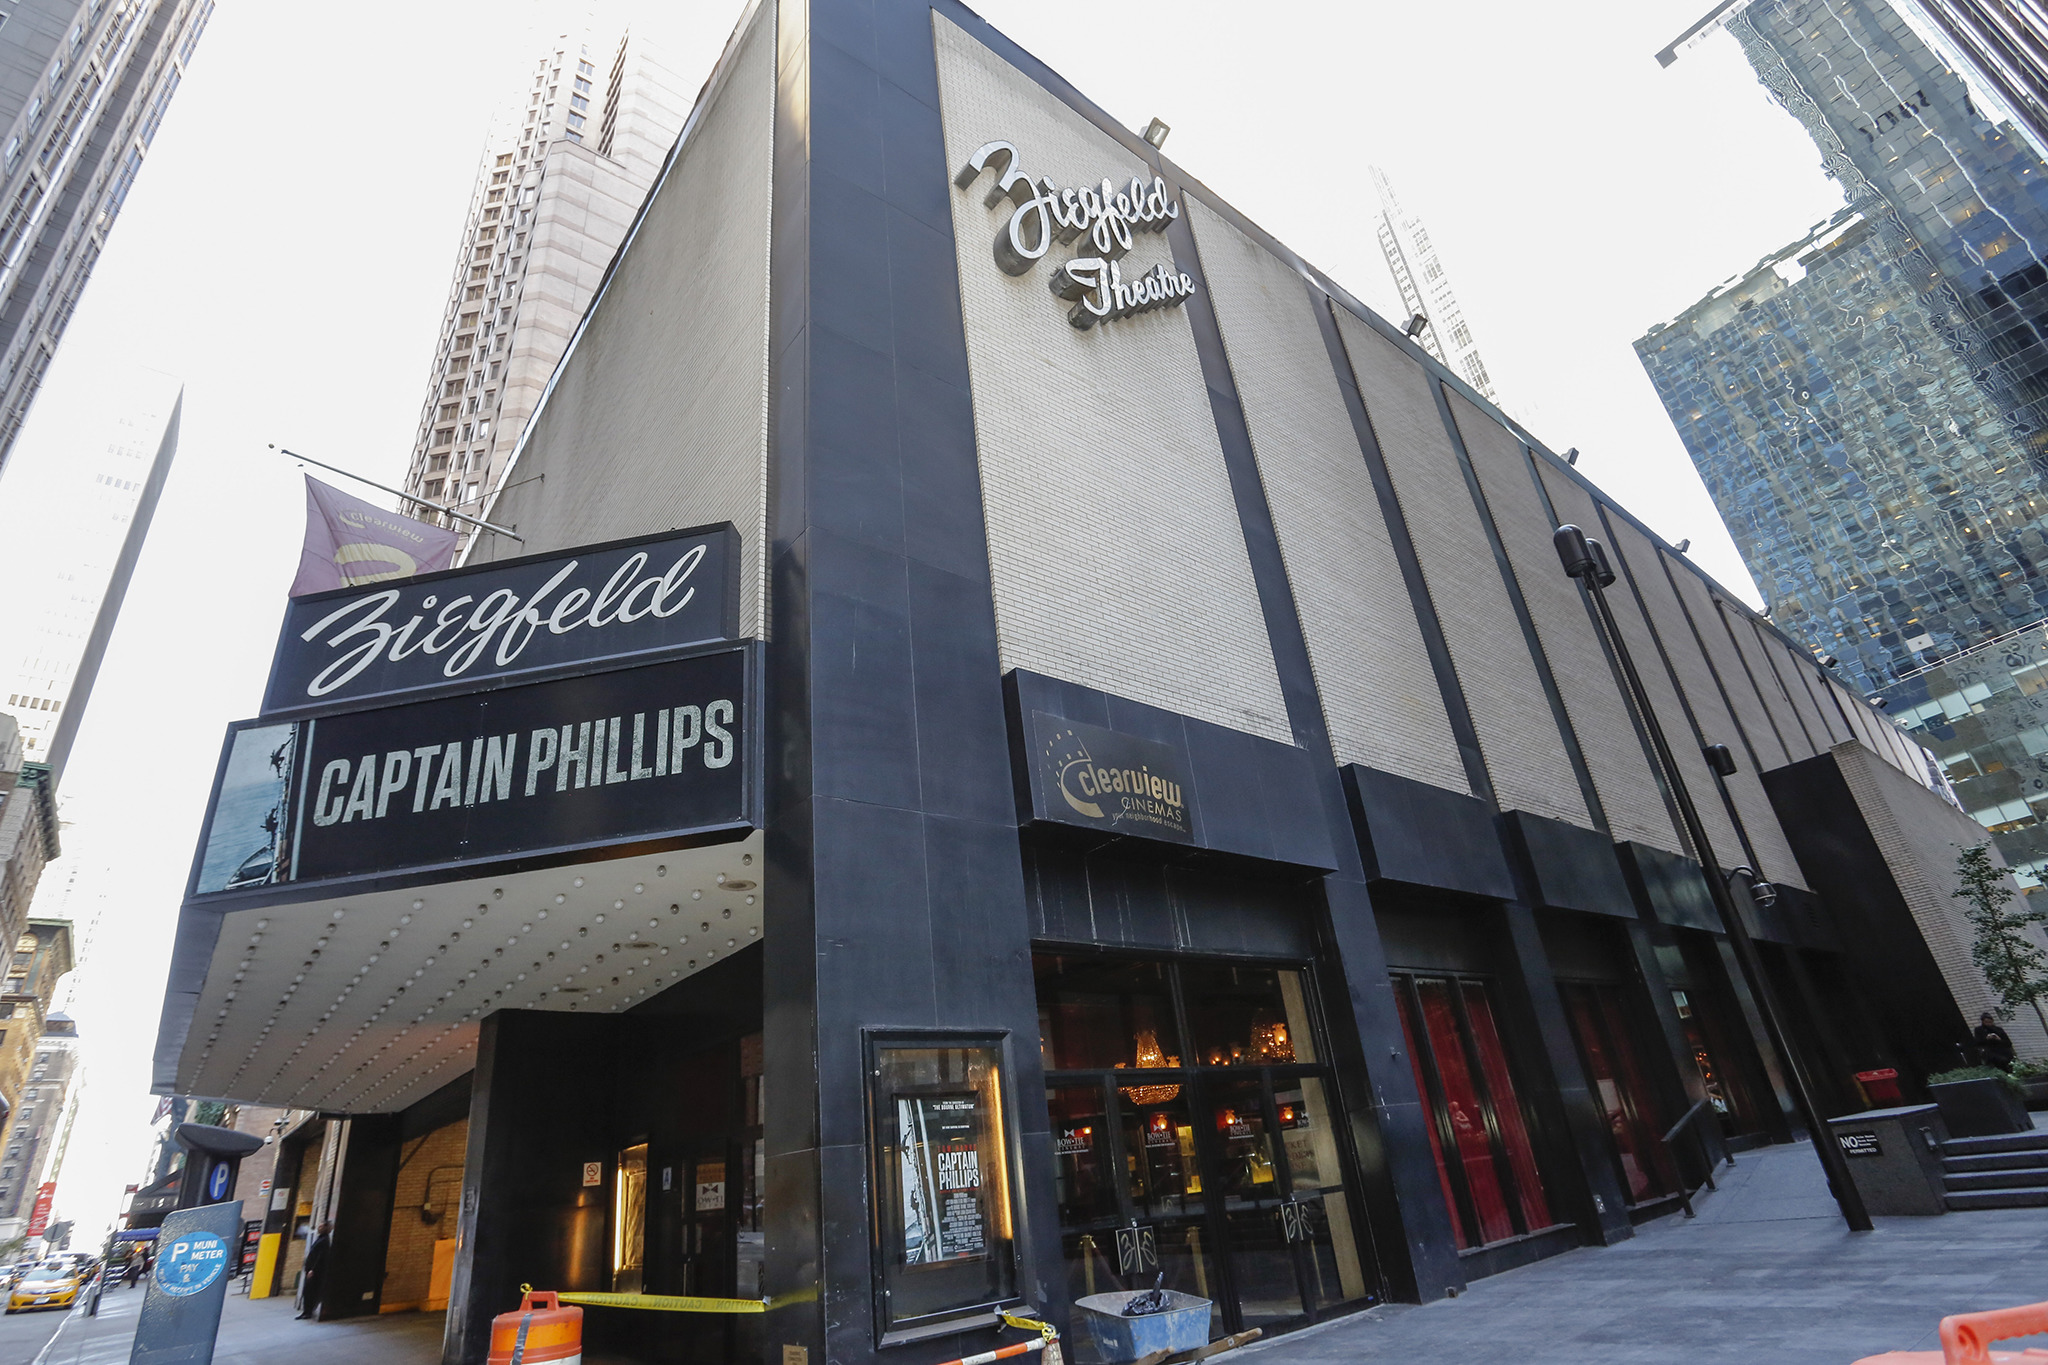 Ziegfeld Theater To Be Converted Into An Event Venue At 141 West 54th Street Midtown New York Yimby